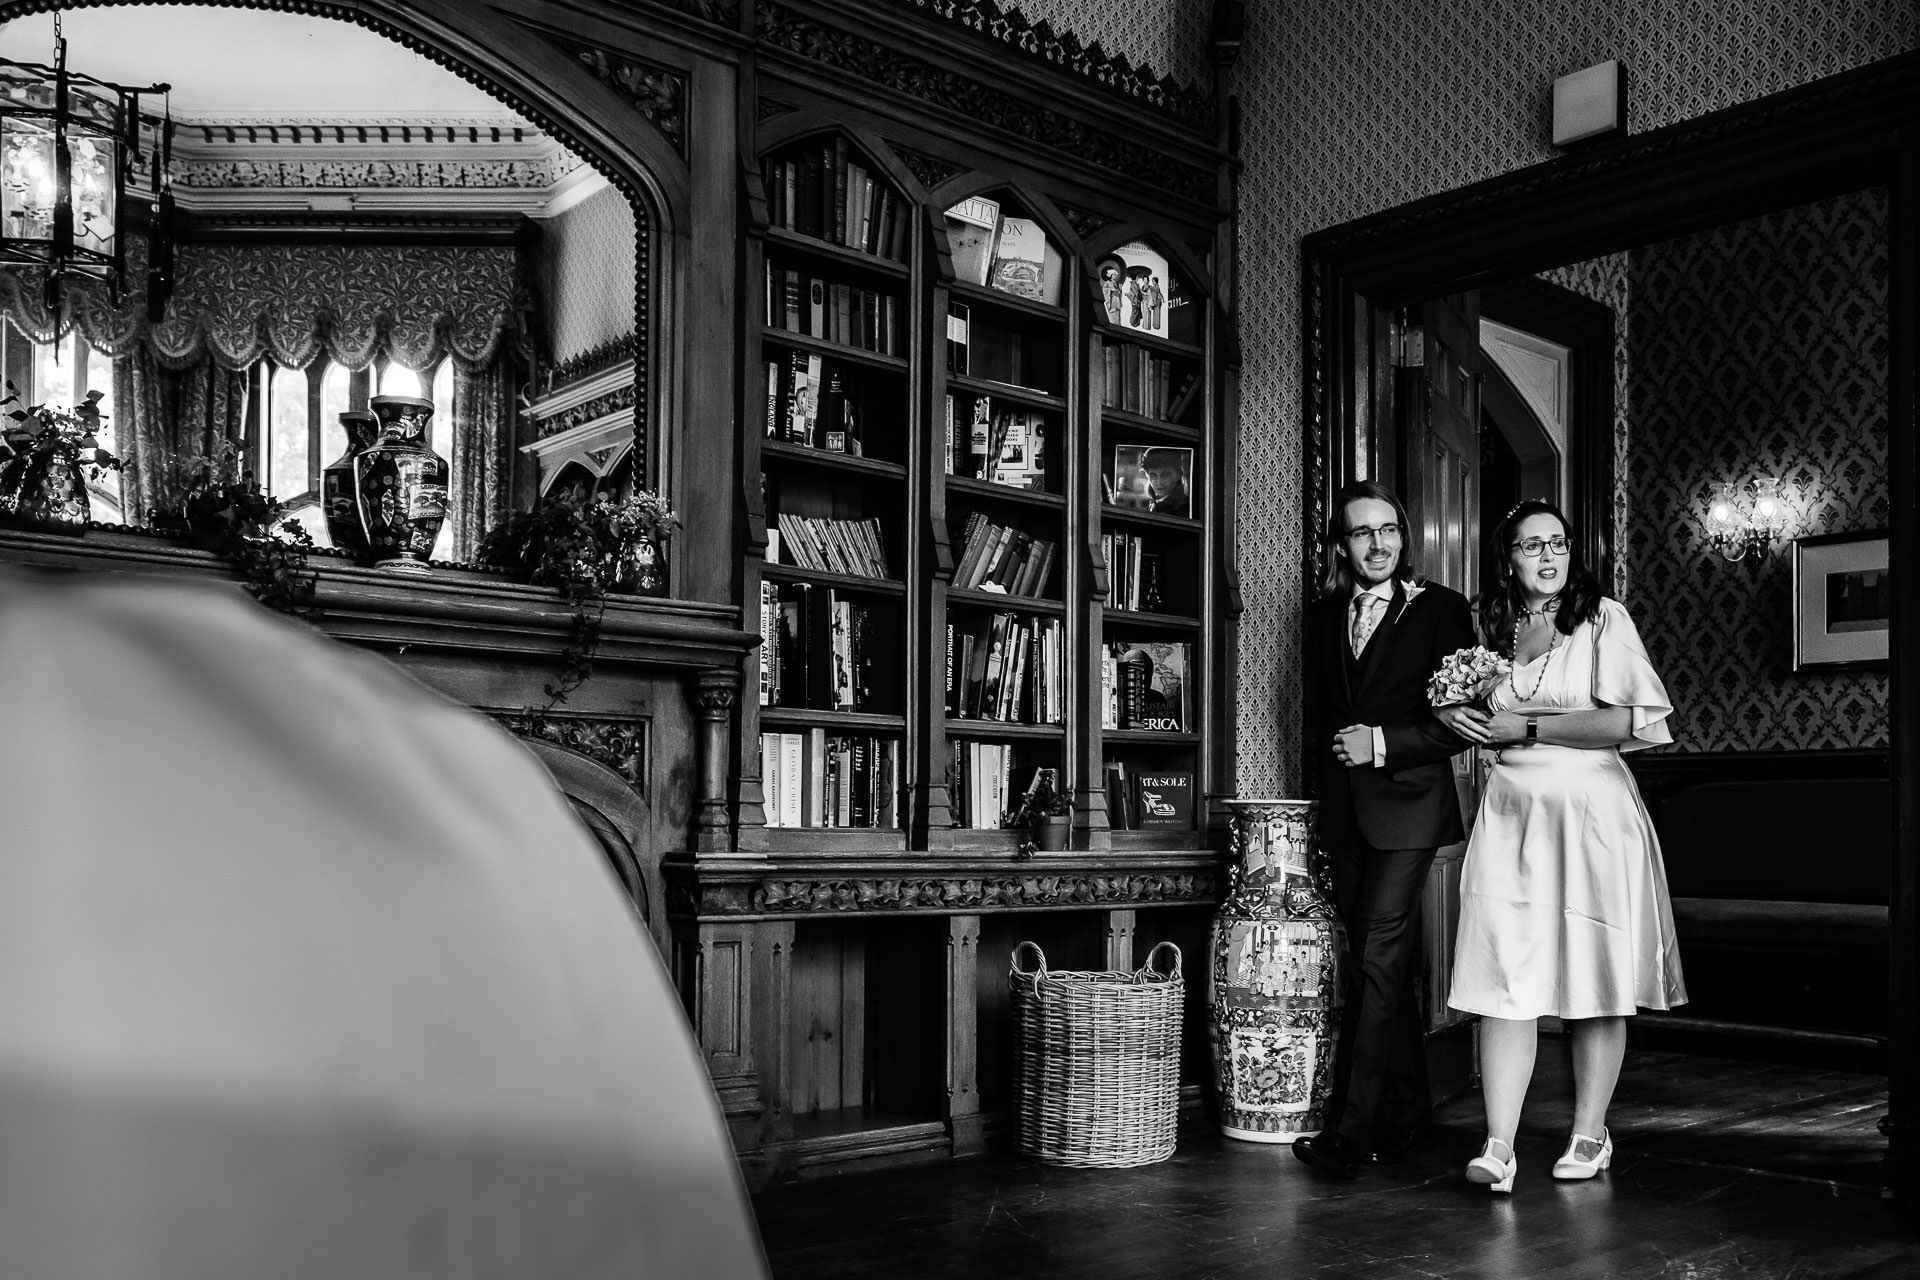 Windsor, Berkshire Elopement Photography | The couple is walking together down the short aisle to their wedding ceremony